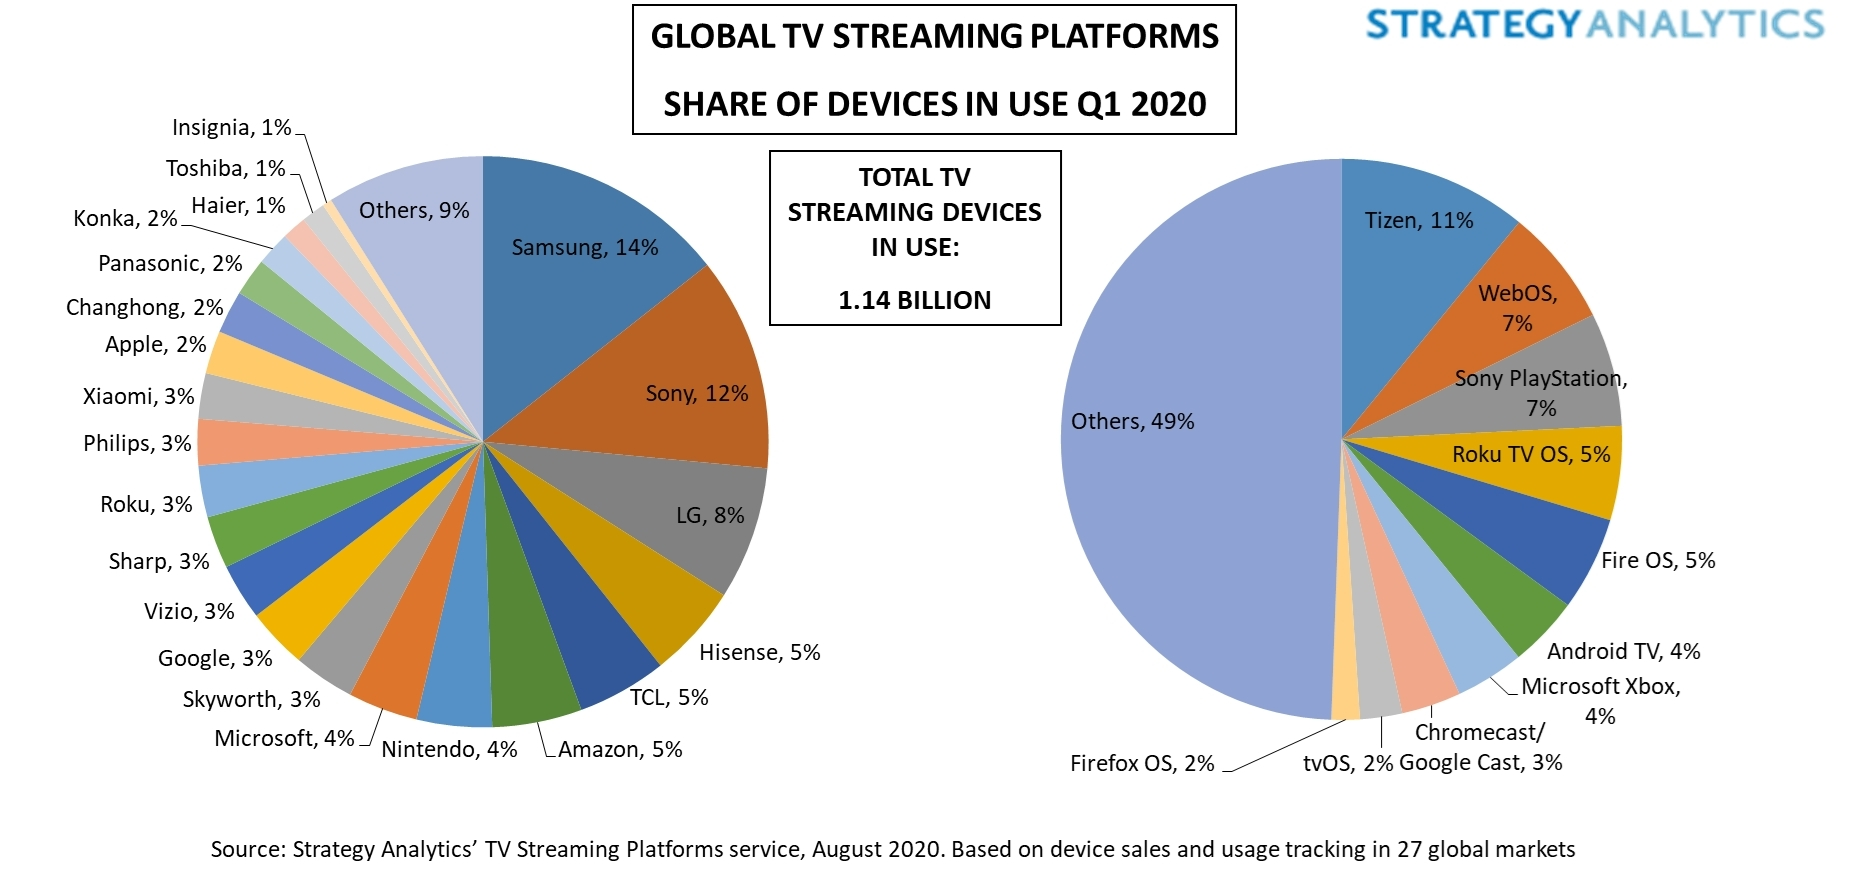 https://mms.businesswire.com/media/20200902005816/en/817983/5/Figure_1._Global_TV_Streaming_Platforms_Share_of_Devices_in_Use_Q1_2020.jpg?download=1